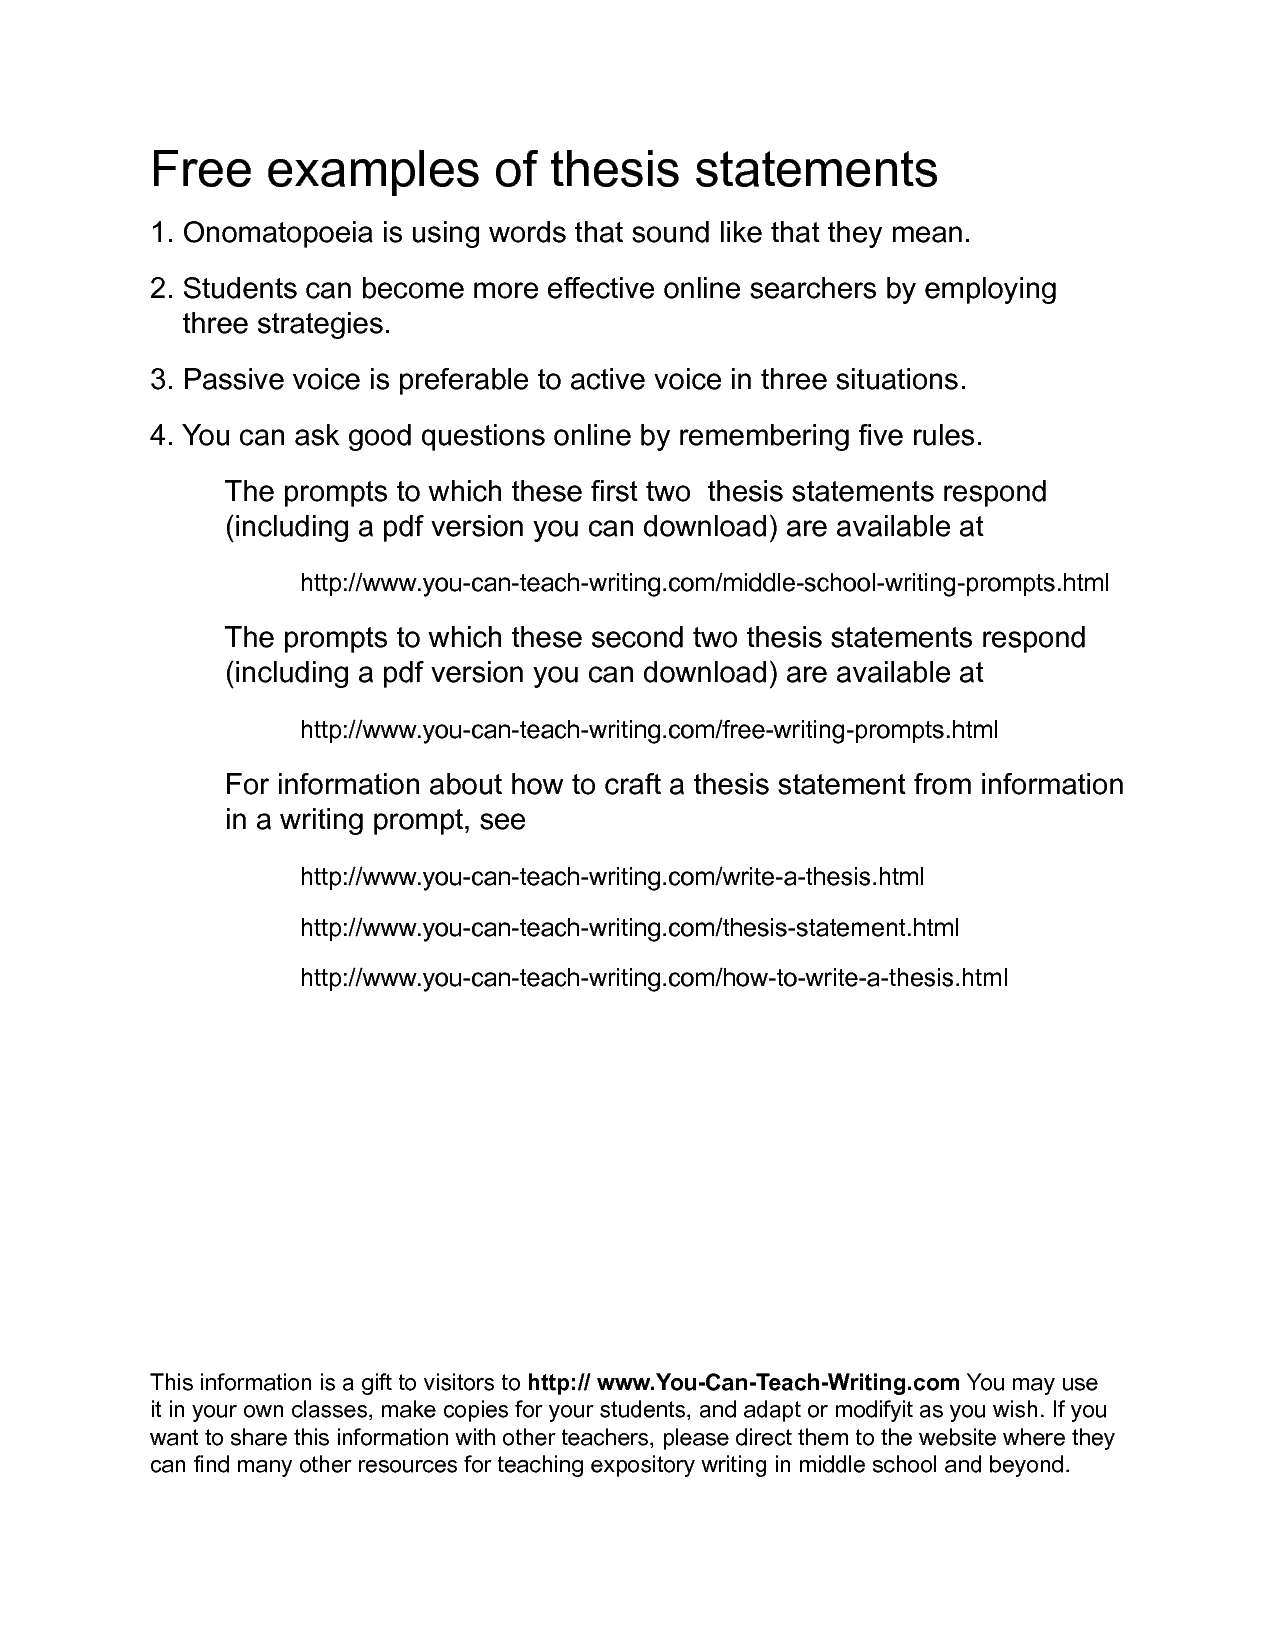 005 Argumentative Research Paper Thesis Examples Essay Statement For Essays Statements Of Comparative Informative College Narrative Compare And Contrast Best Full